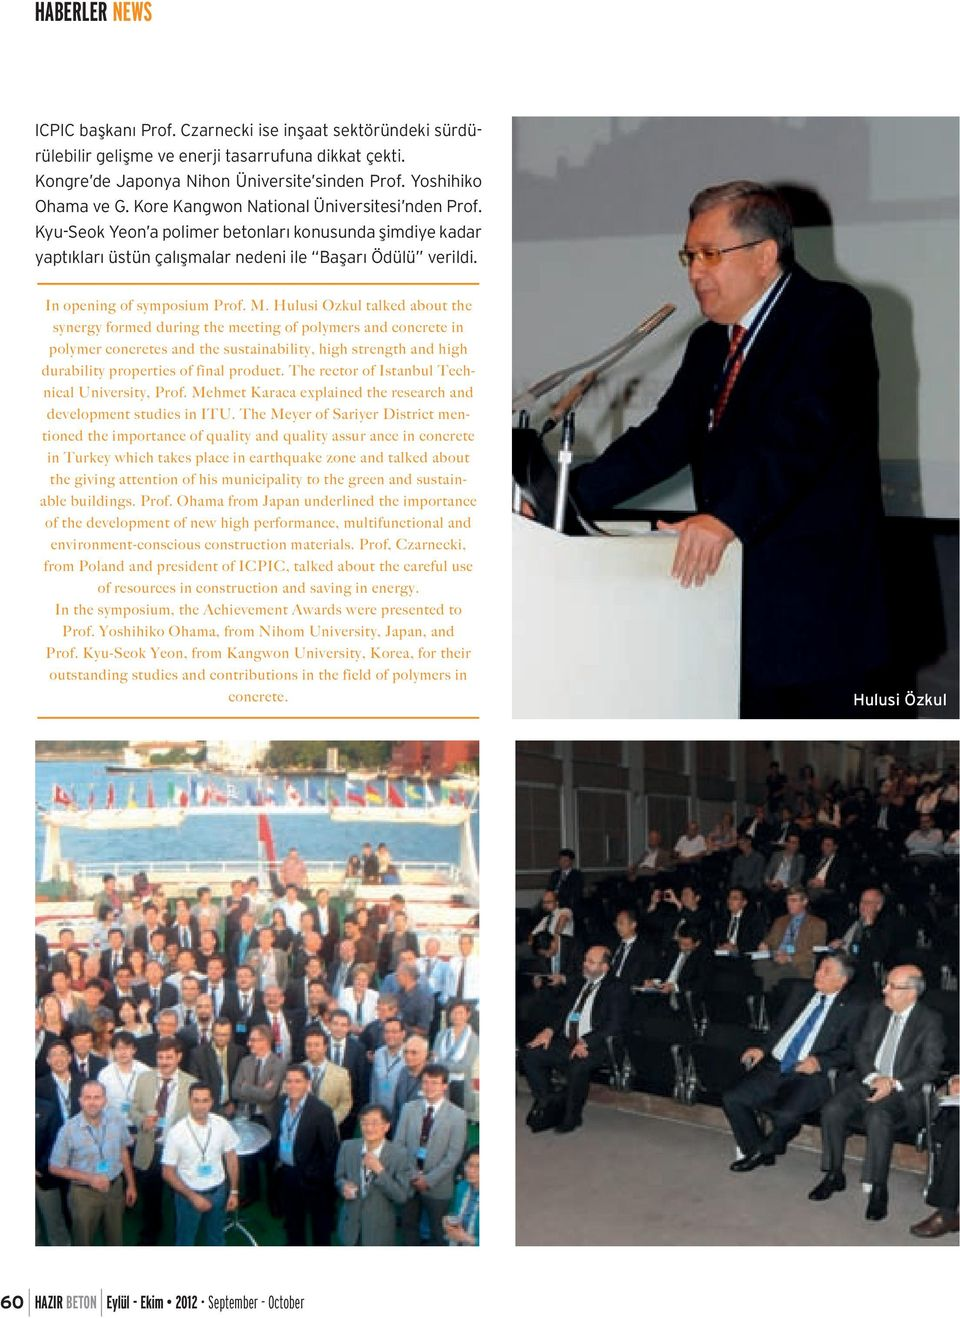 Hulusi Ozkul talked about the synergy formed during the meeting of polymers and concrete in polymer concretes and the sustainability, high strength and high durability properties of final product.